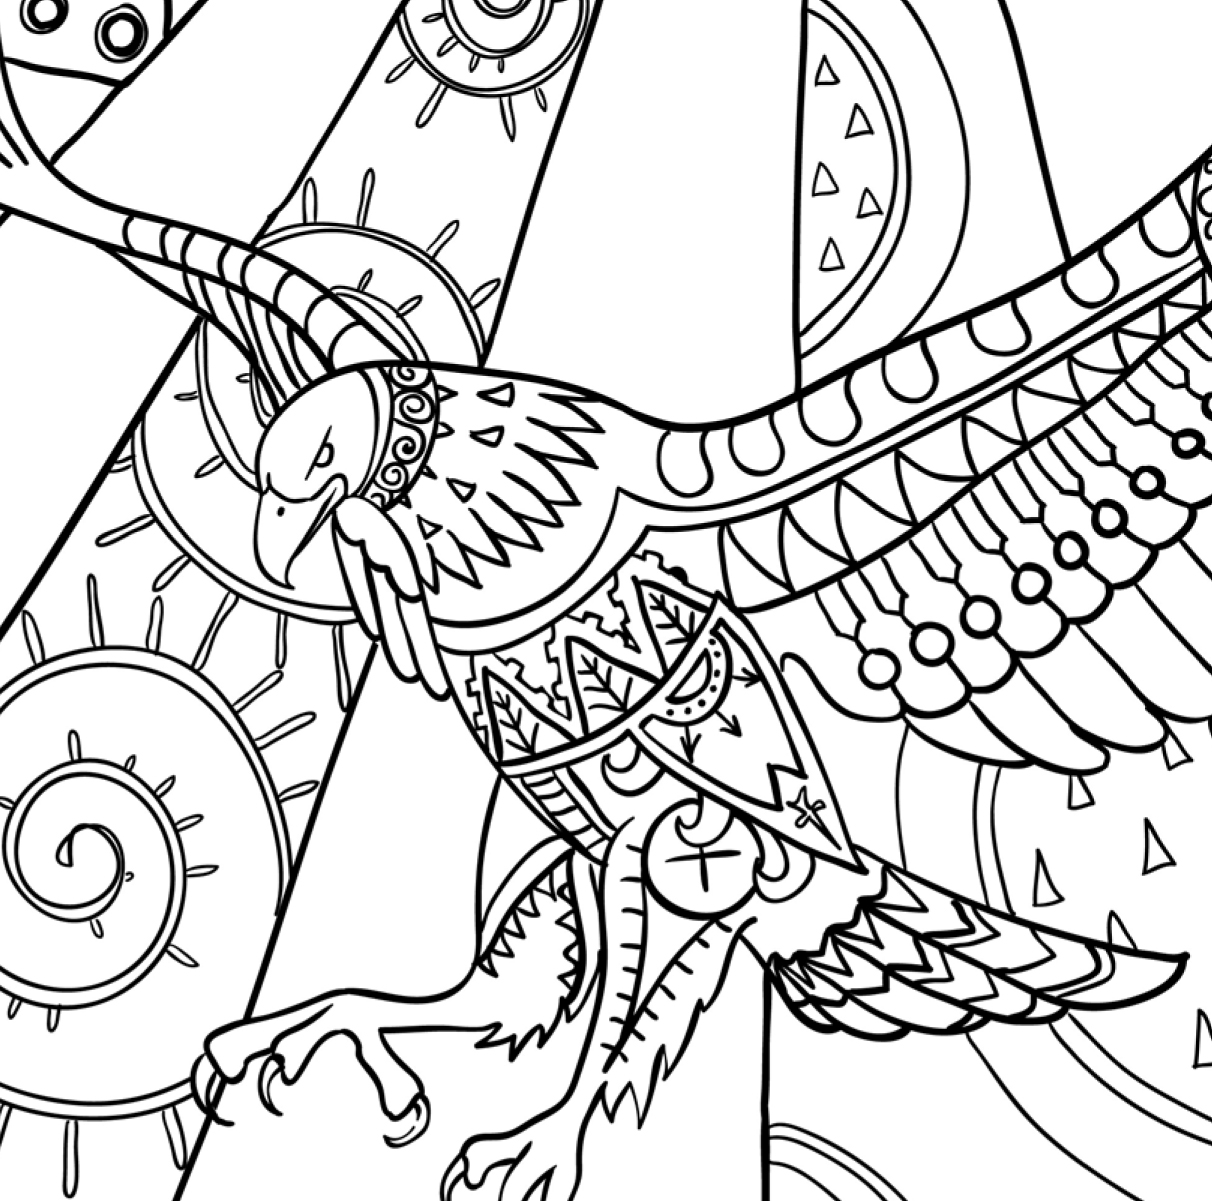 Amazing Birds Adult Coloring Book #Review #Promotion